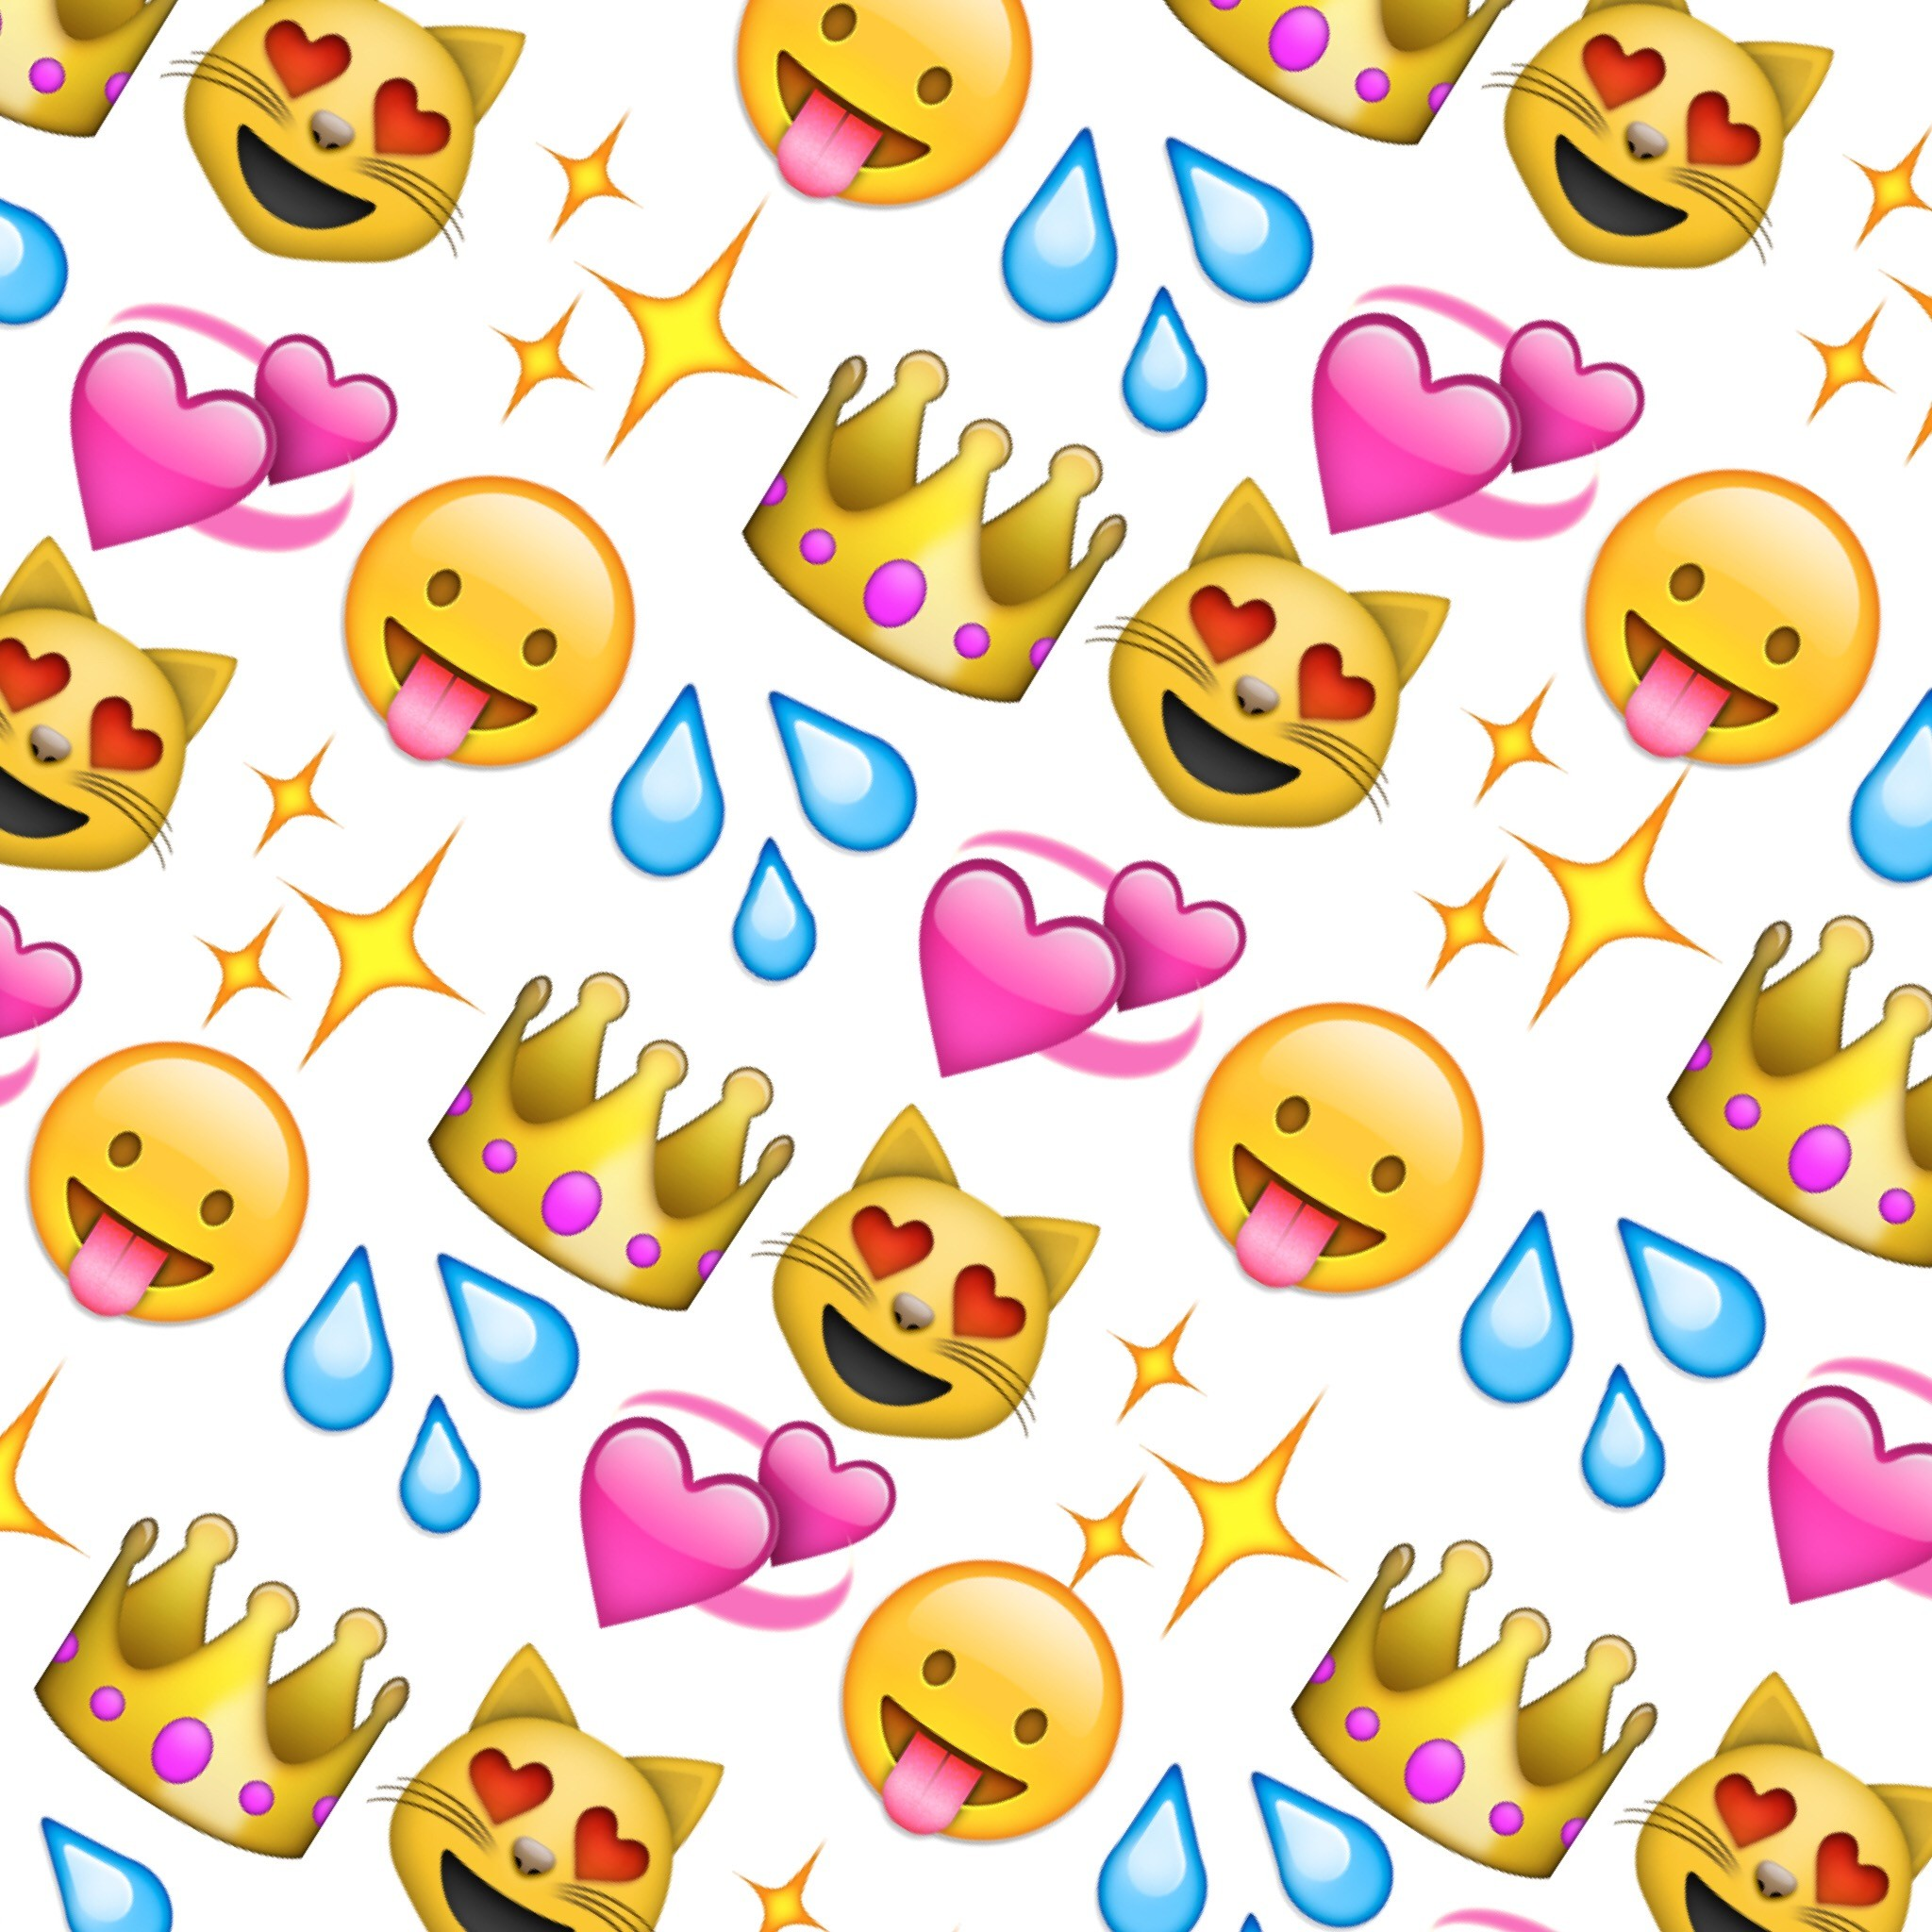 Cute Emoji Wallpapers For Girls 37 Images